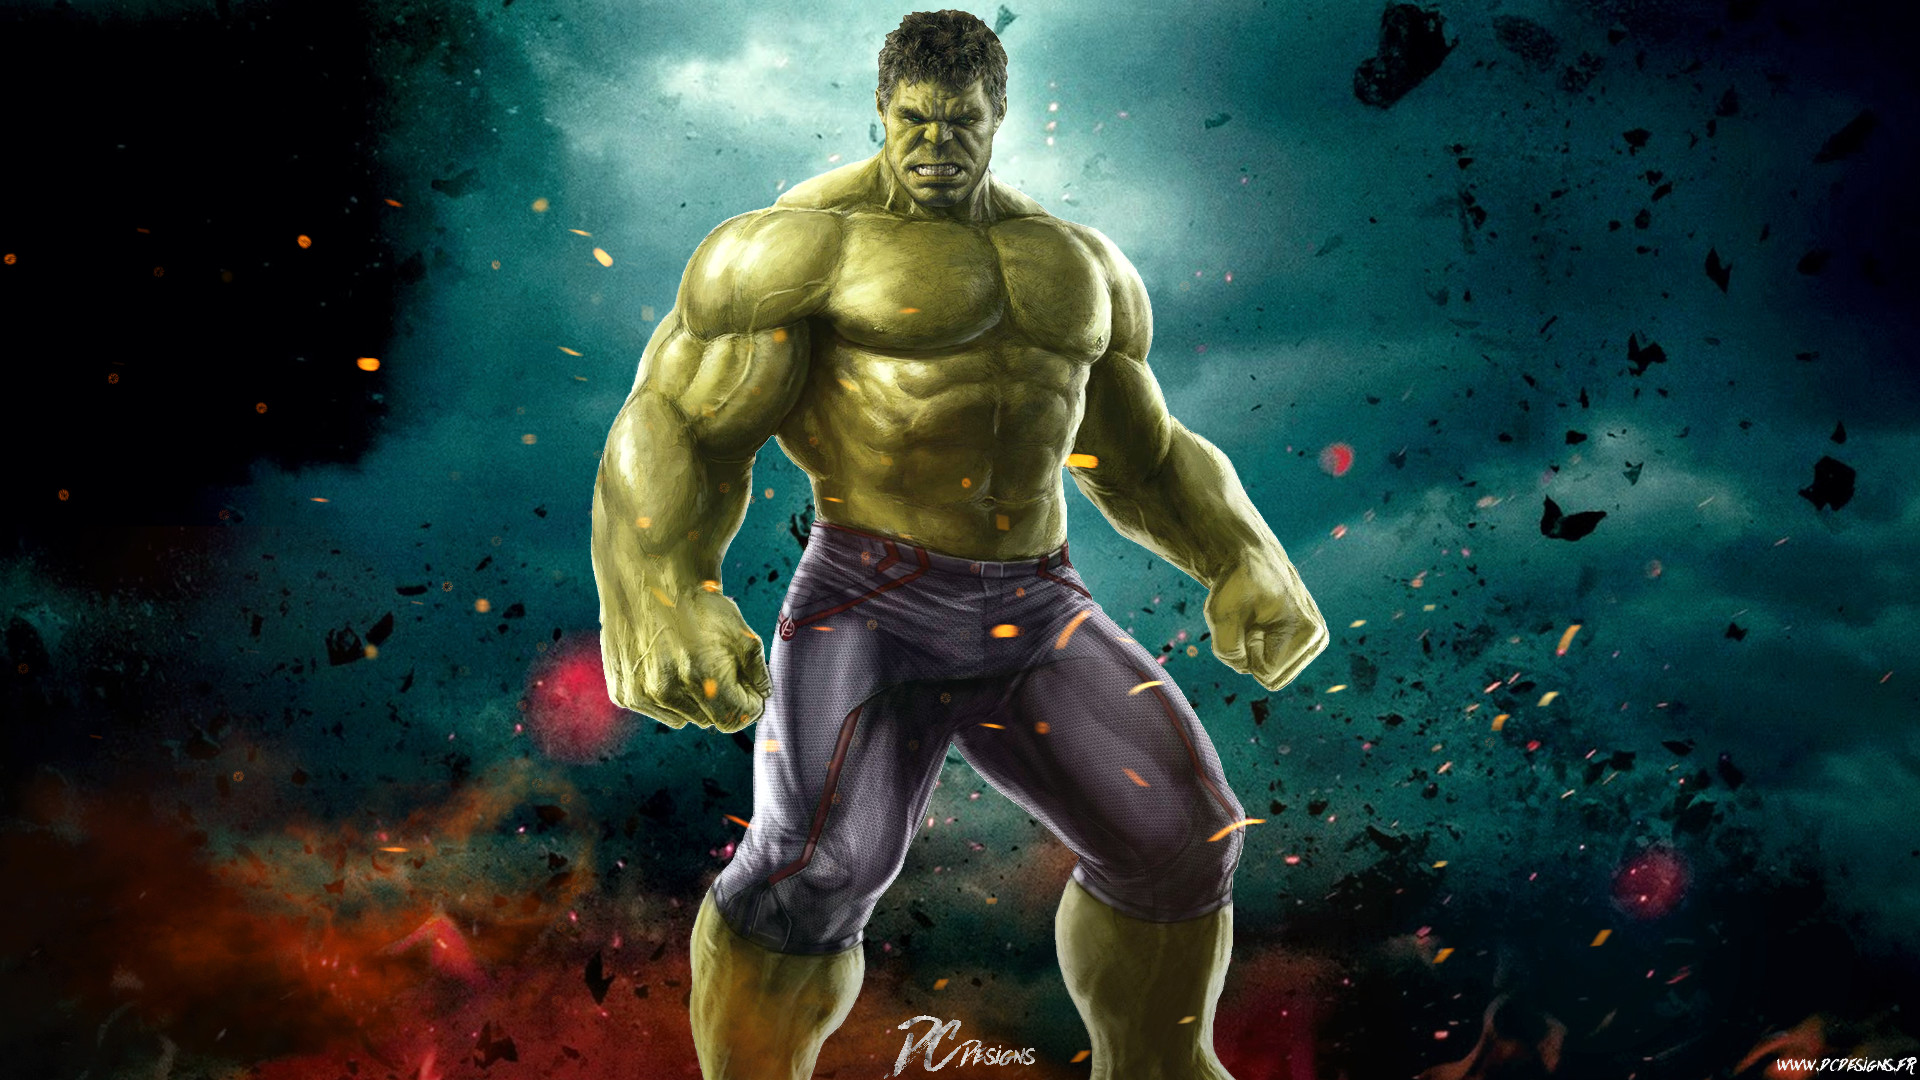 1920x1080 Hulk Wallpaper Free Download 2.